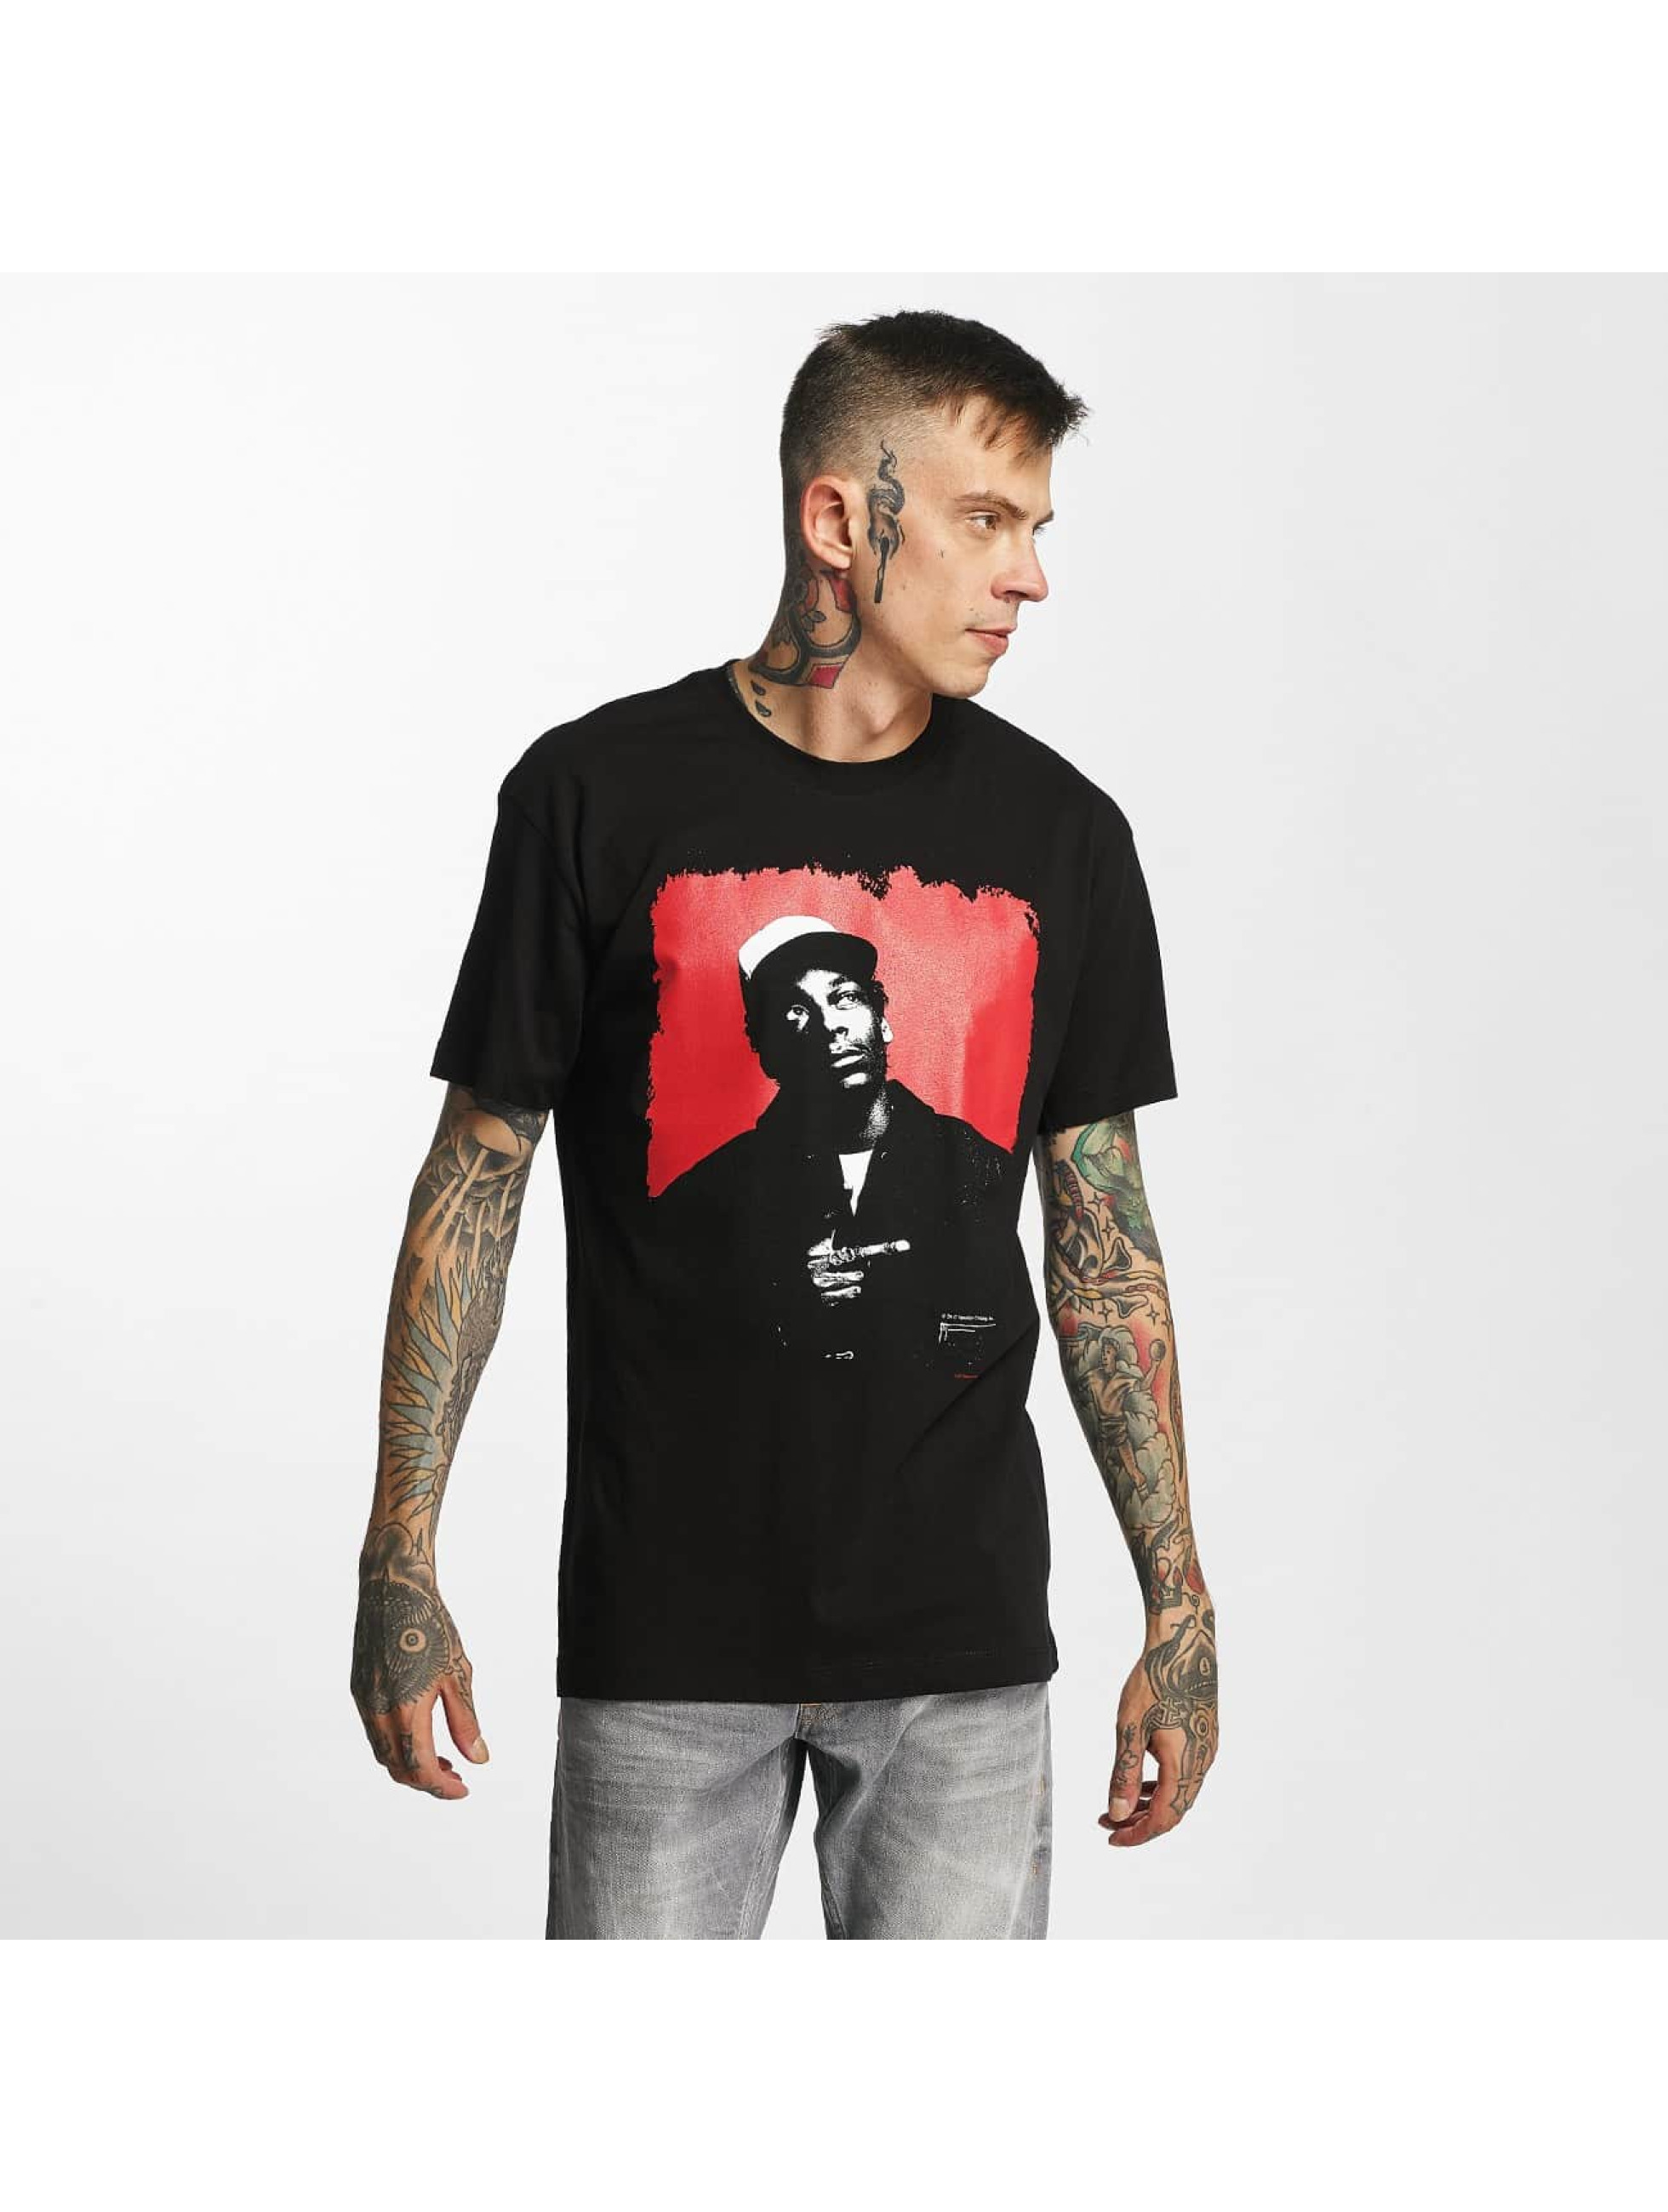 Amplified T-Shirt Snoop Dogg - Red Square black